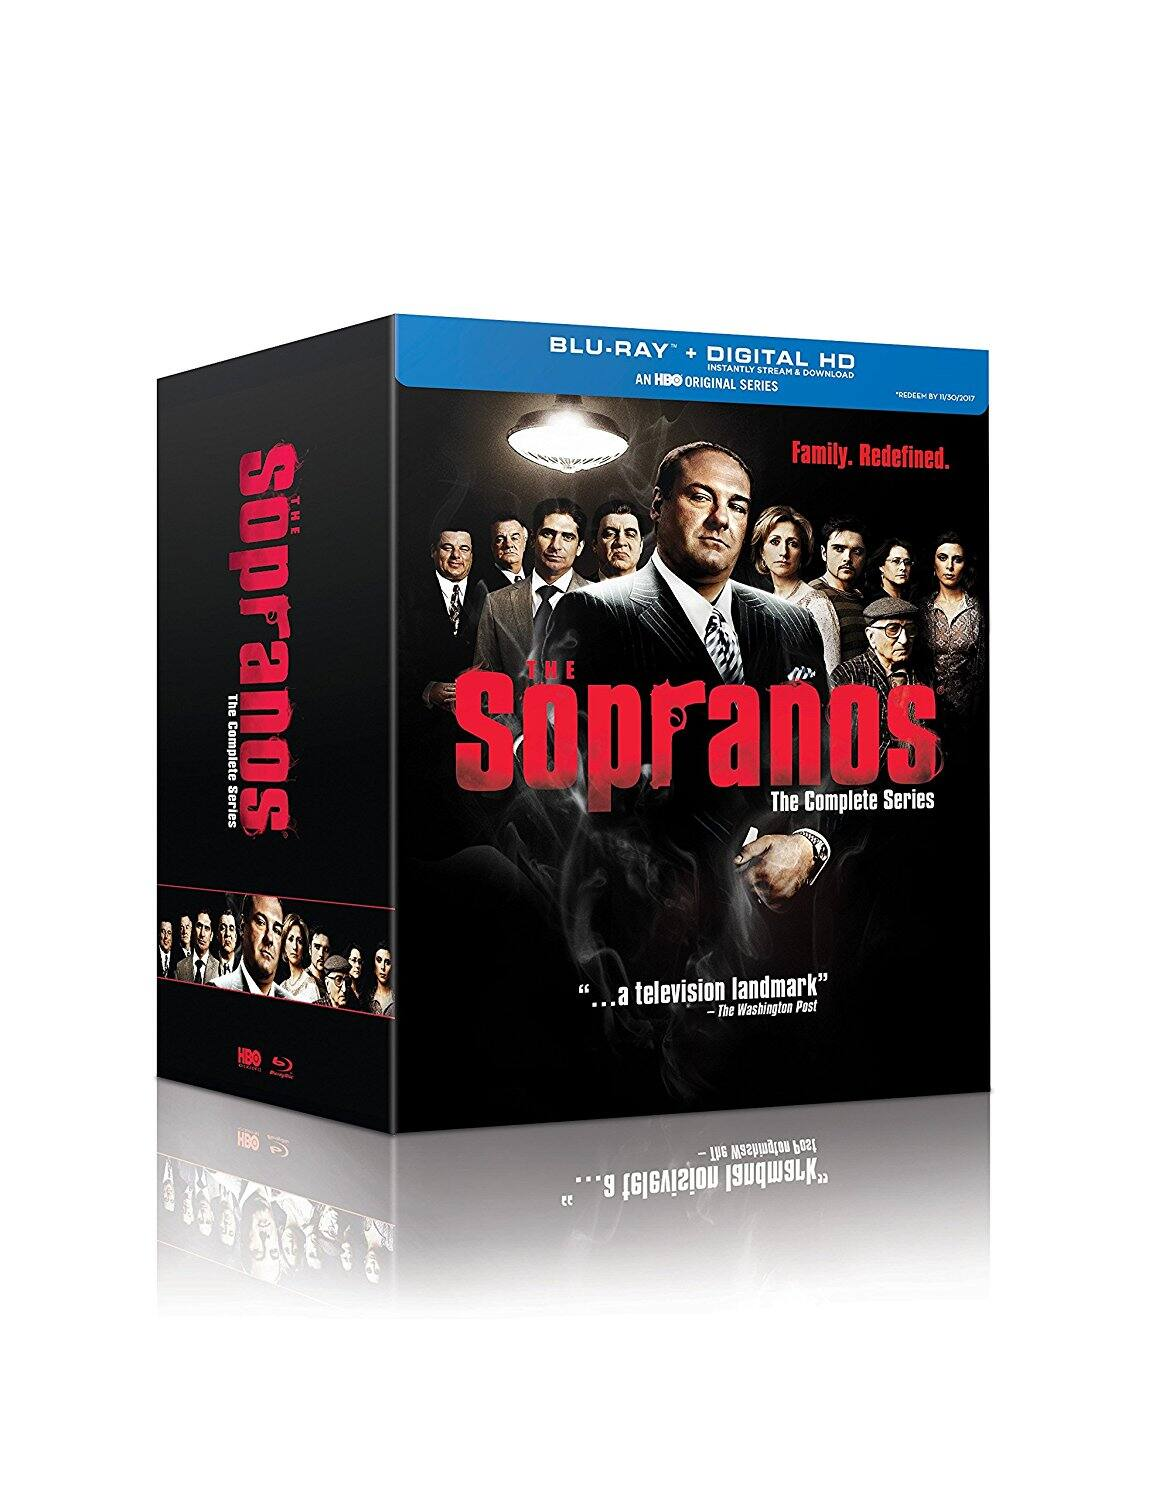 The Sopranos: The Complete Series (Blu-ray + Digital HD) $49.99 + Free Shipping ~ Amazon or Best Buy